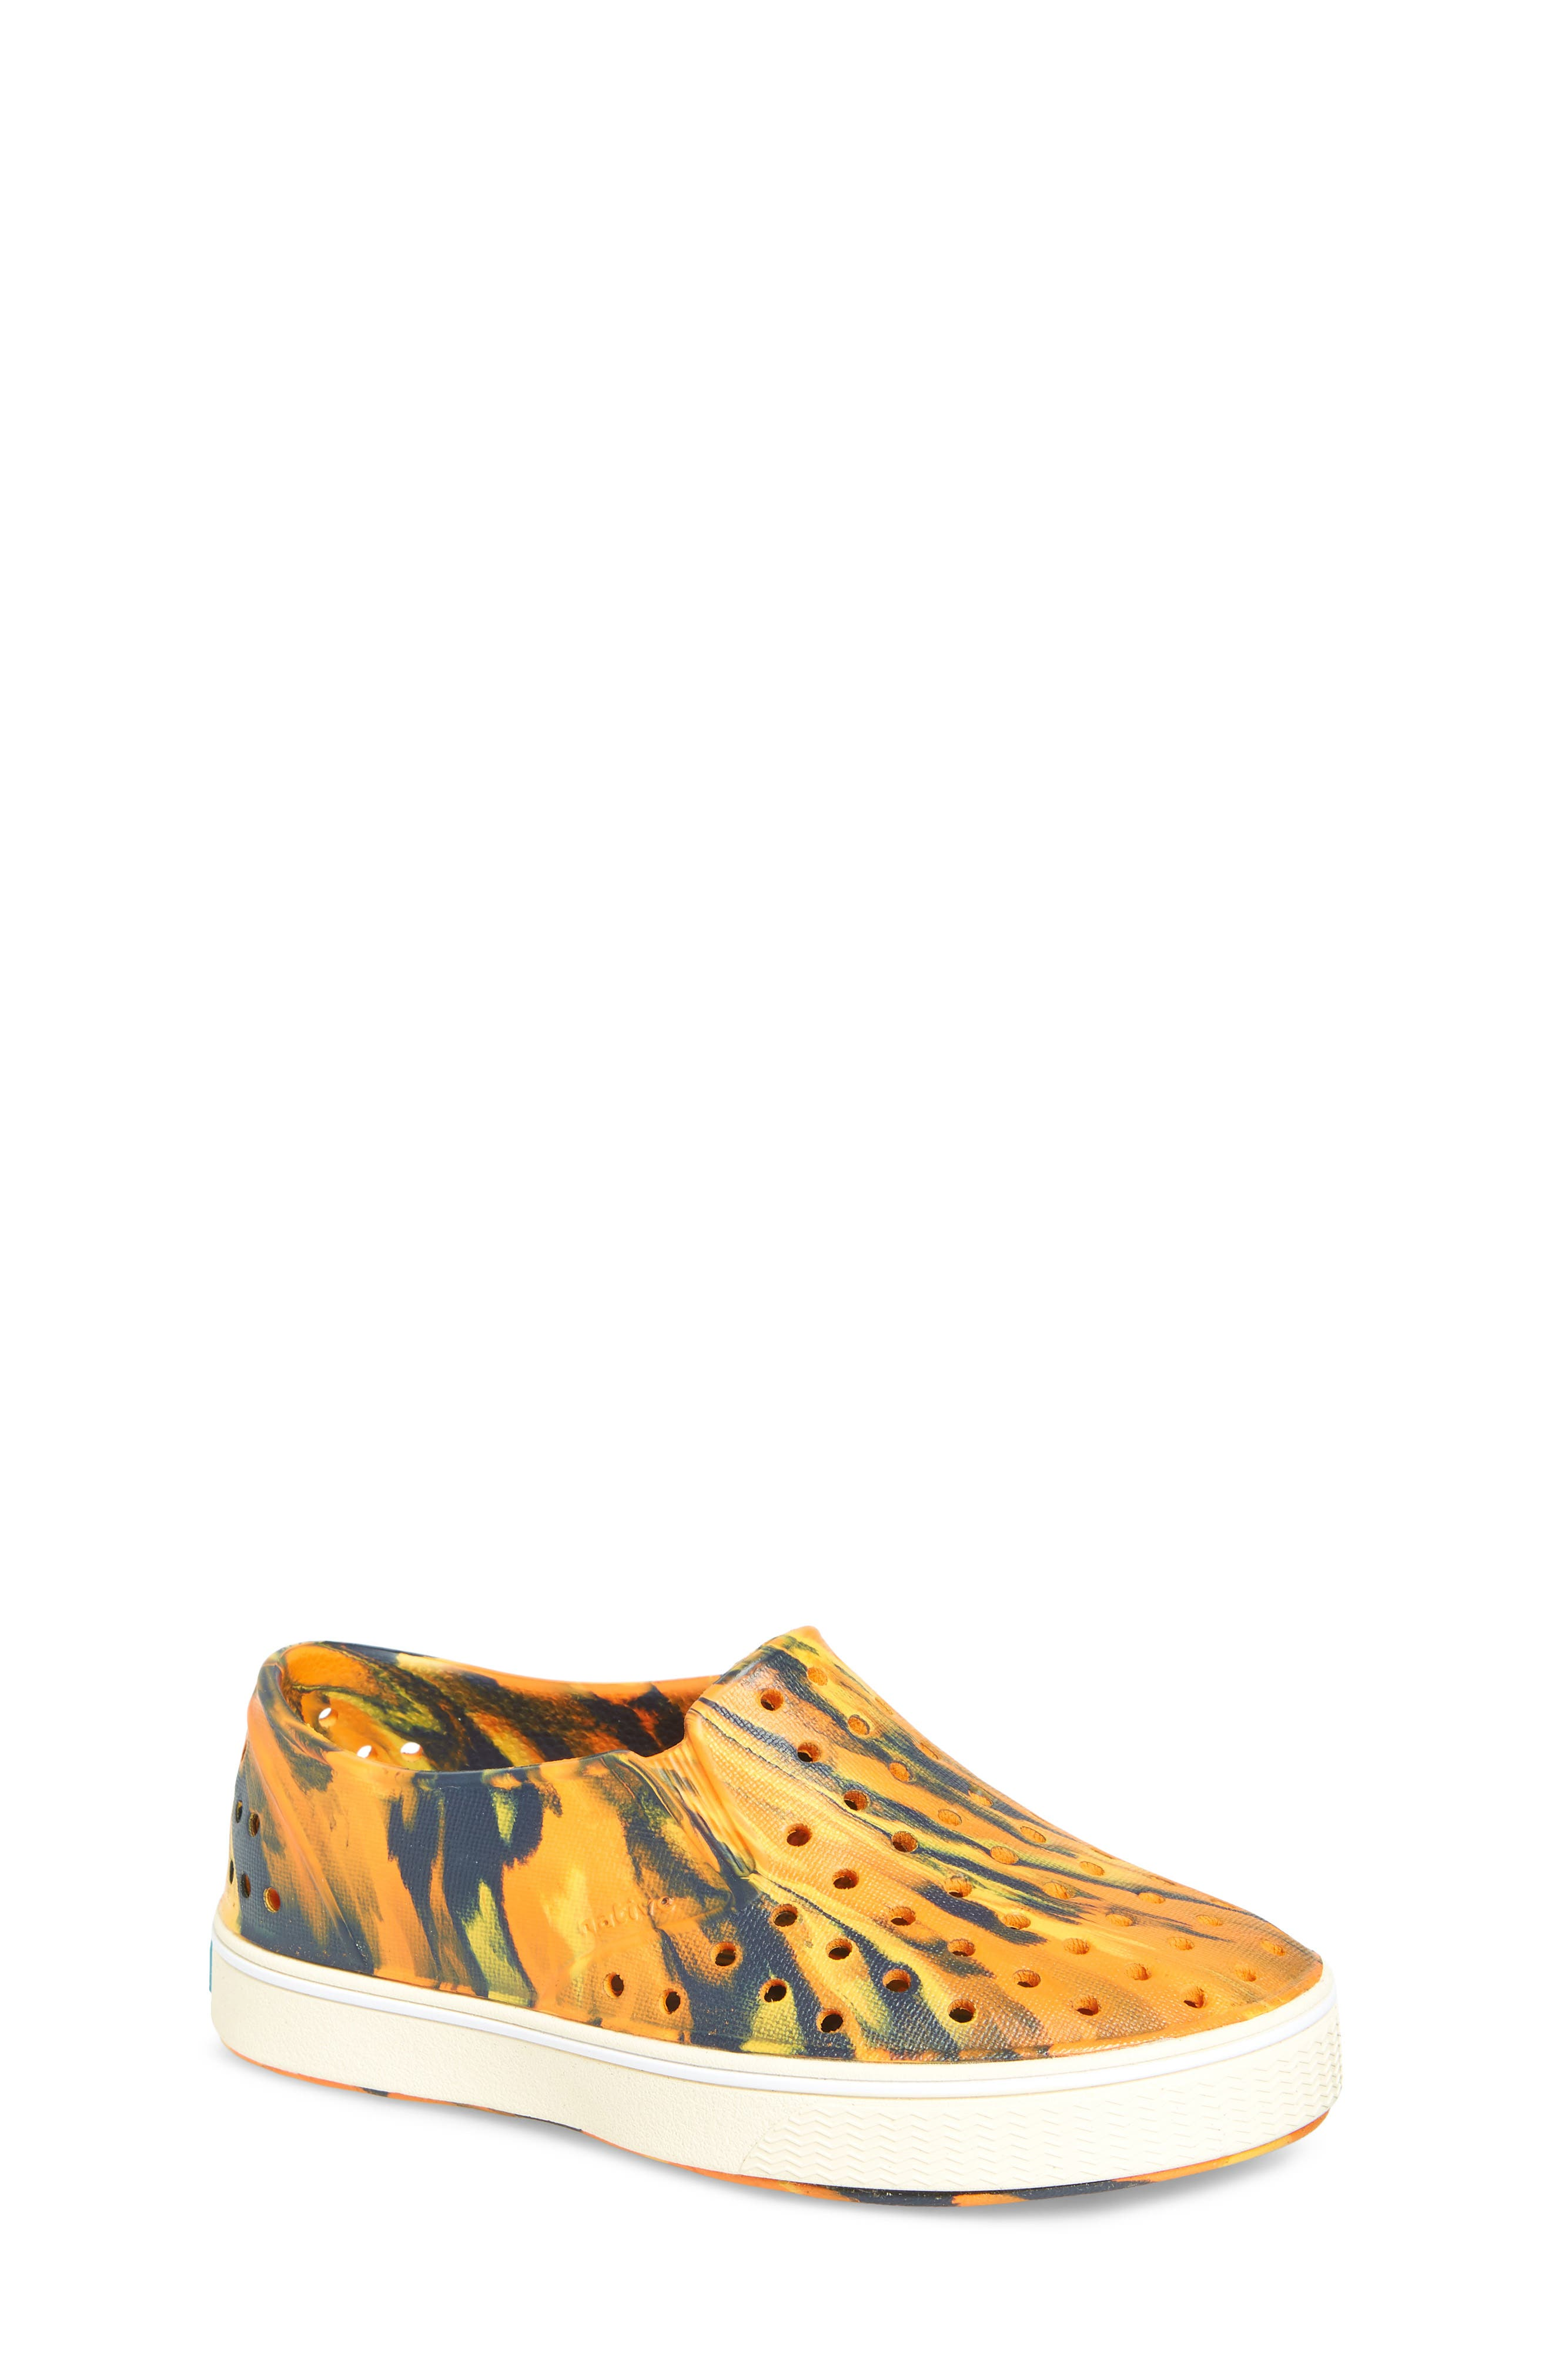 Main Image - Native Shoes Miles Marbled Slip-On Sneaker (Baby, Walker, Toddler & Little Kid)